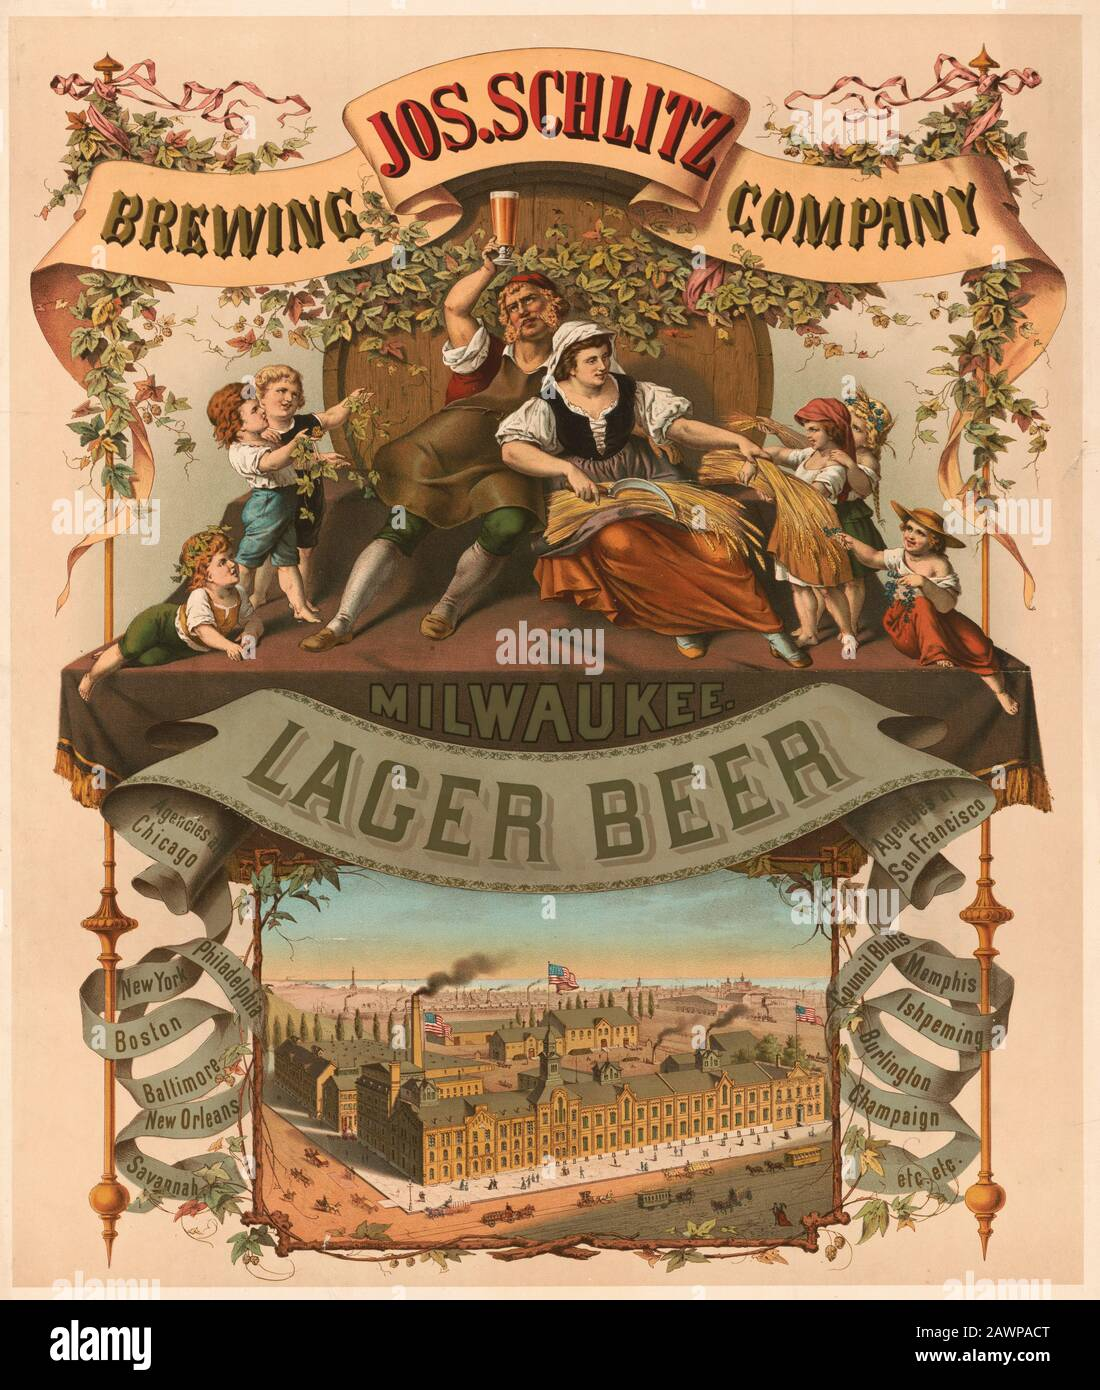 Notting Hill Brewery vintage Beer Advertising poster reproduction.